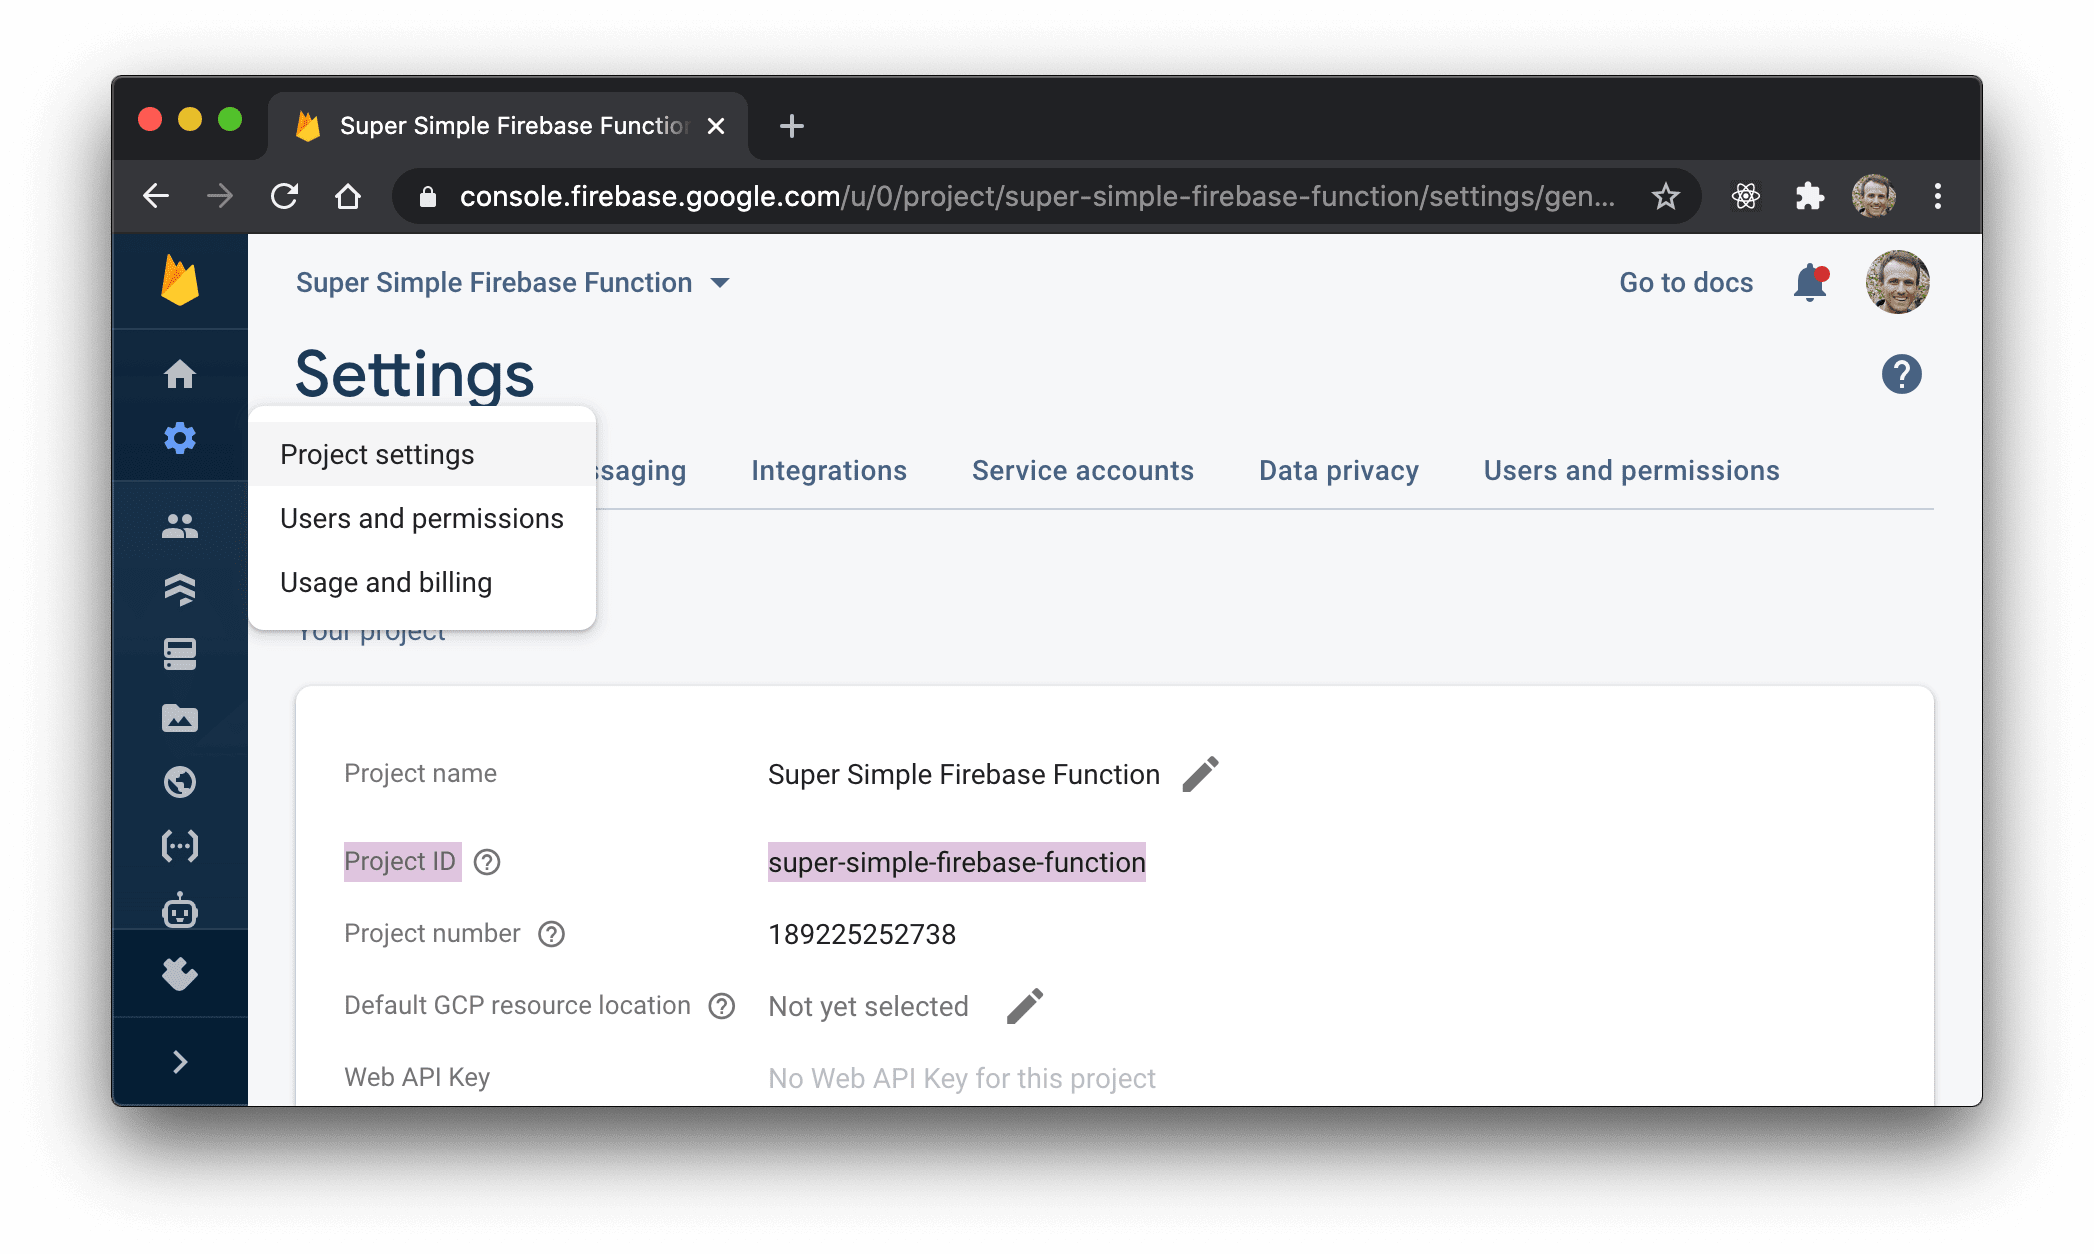 Firebase console showing the setting page with the Project ID